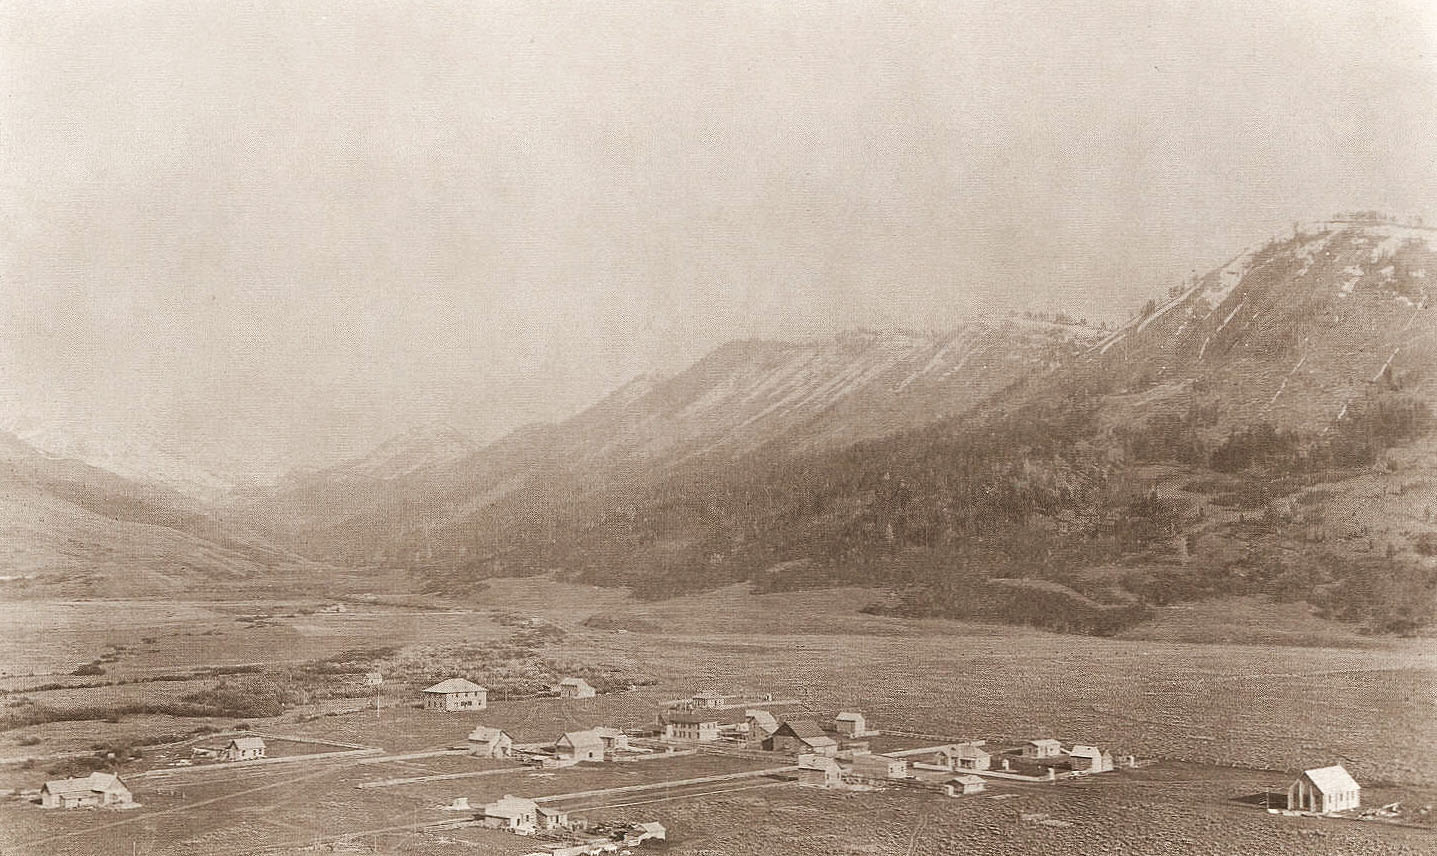 An historic photo of Jackson Hole, Wyoming taken in 1907.